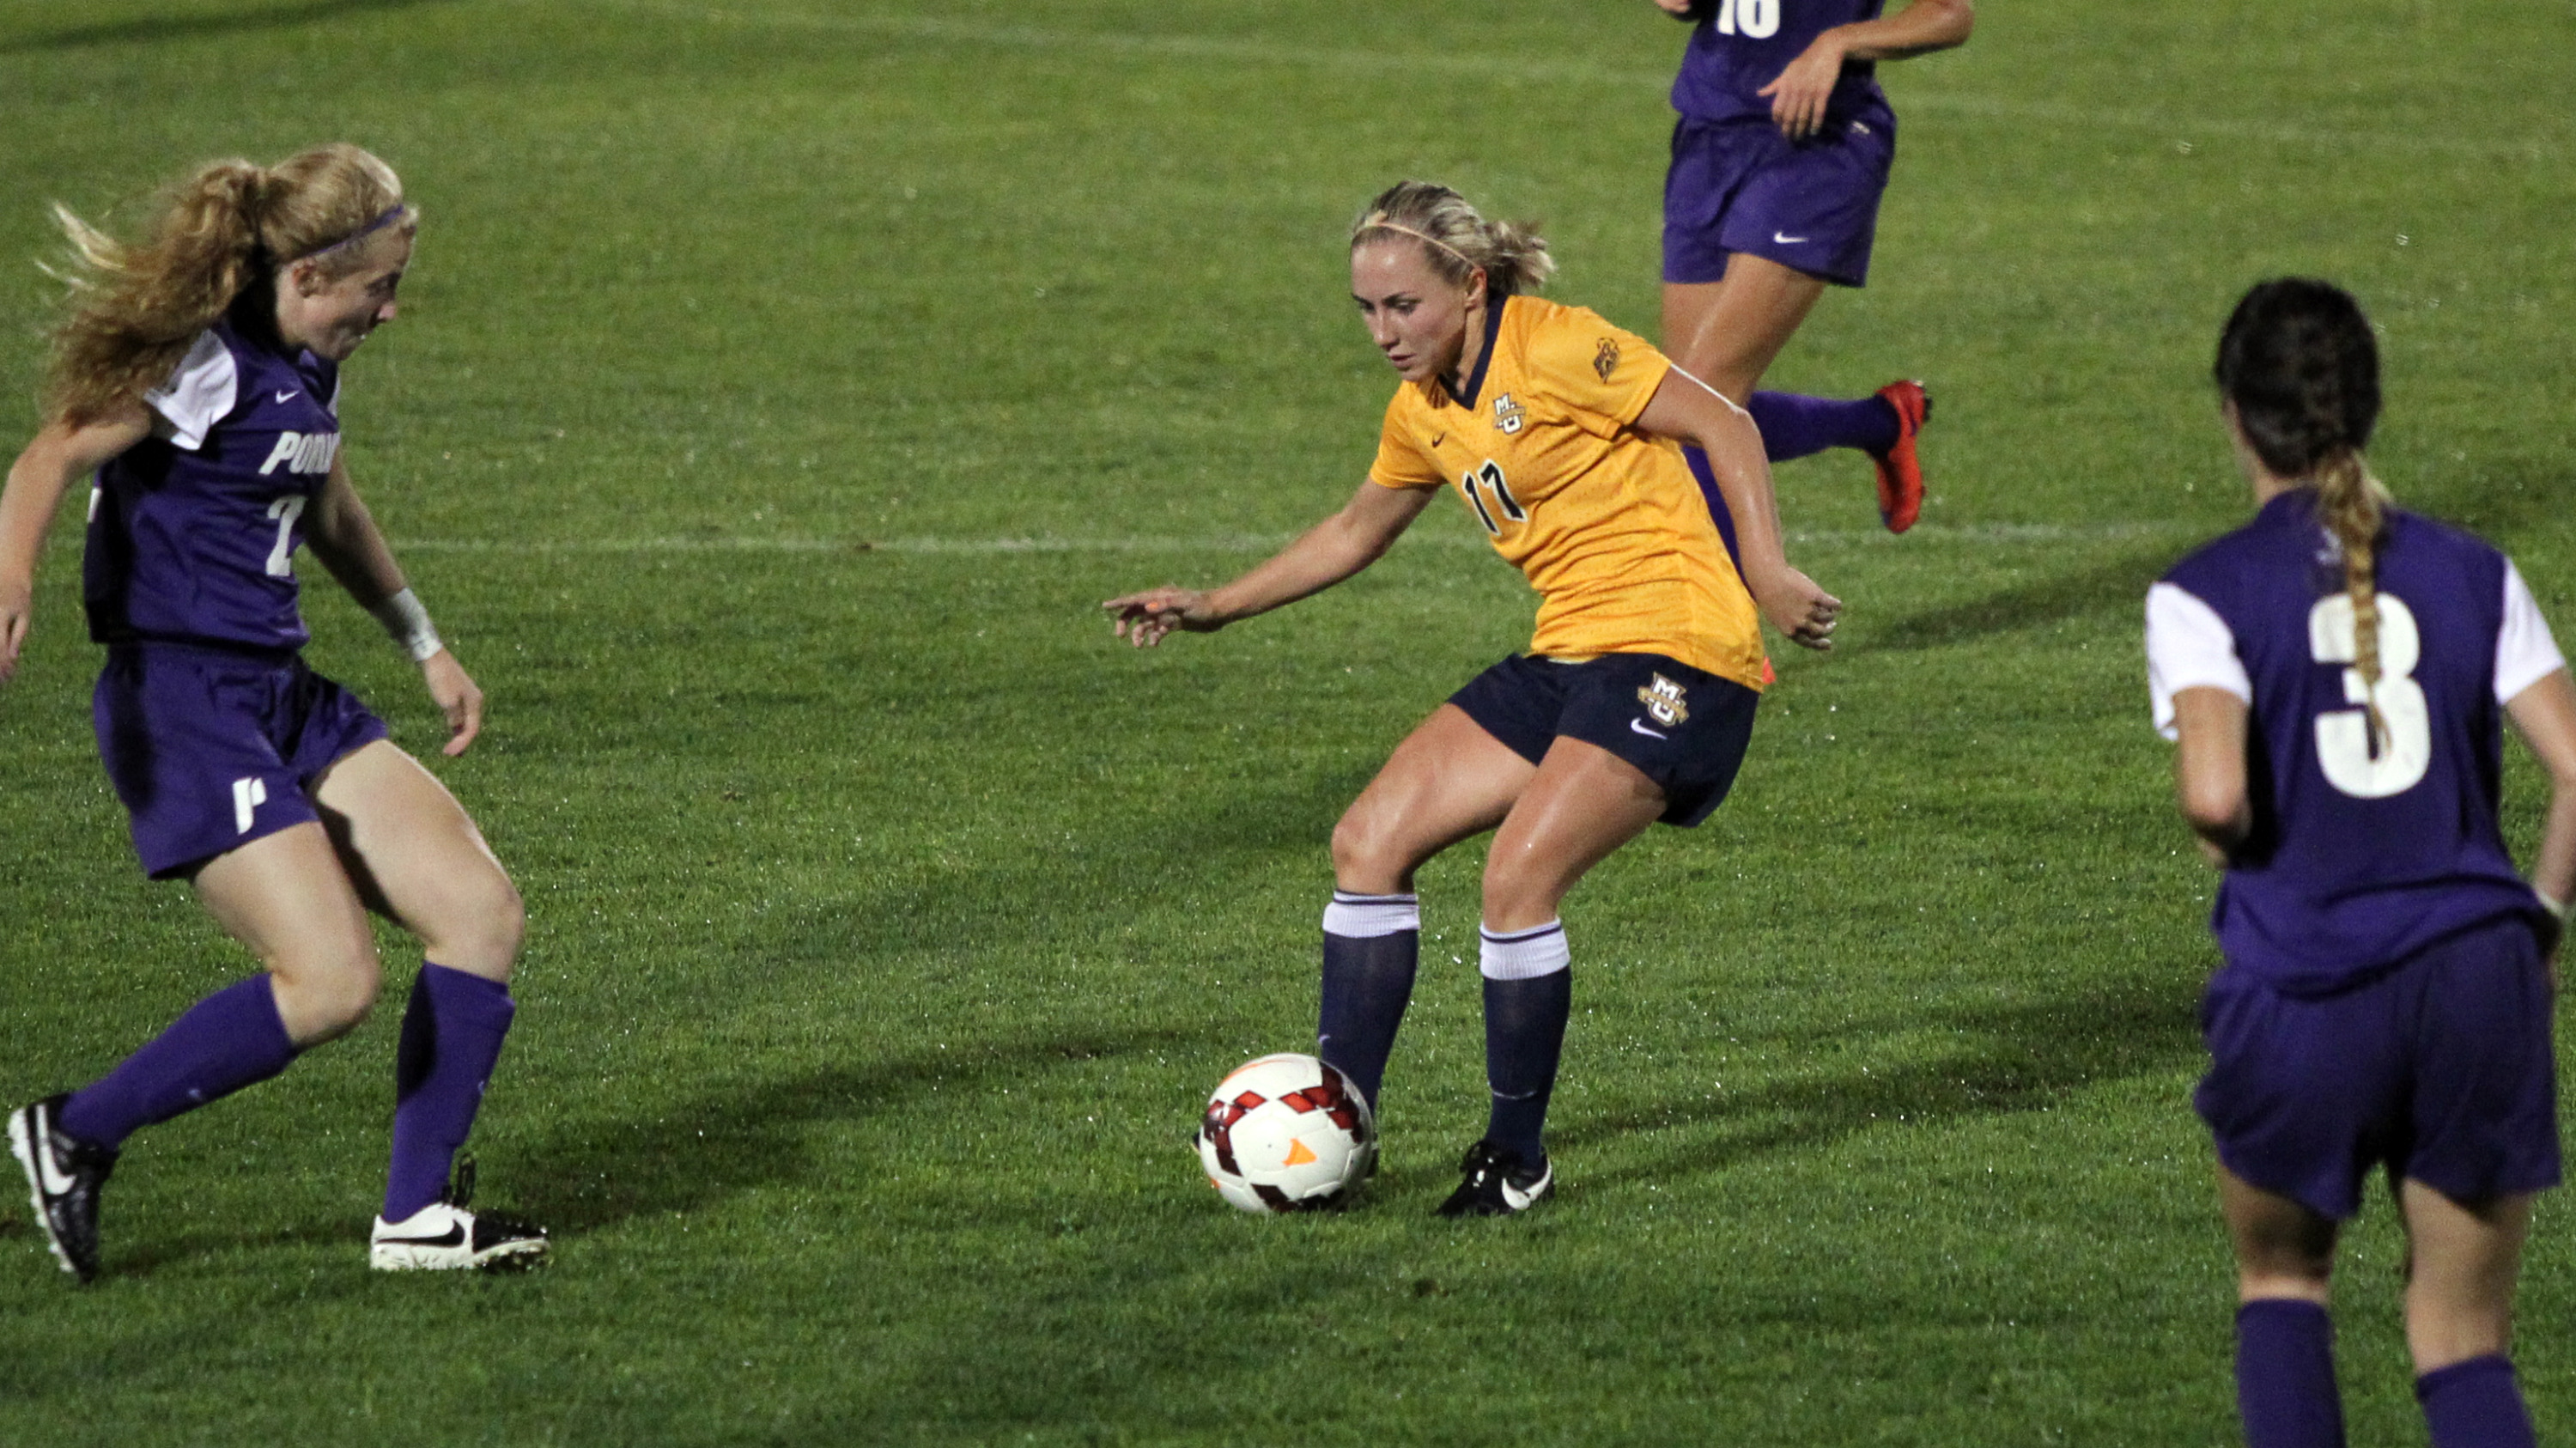 Liz Bartels posted a game-high three points with a goal and an assist.